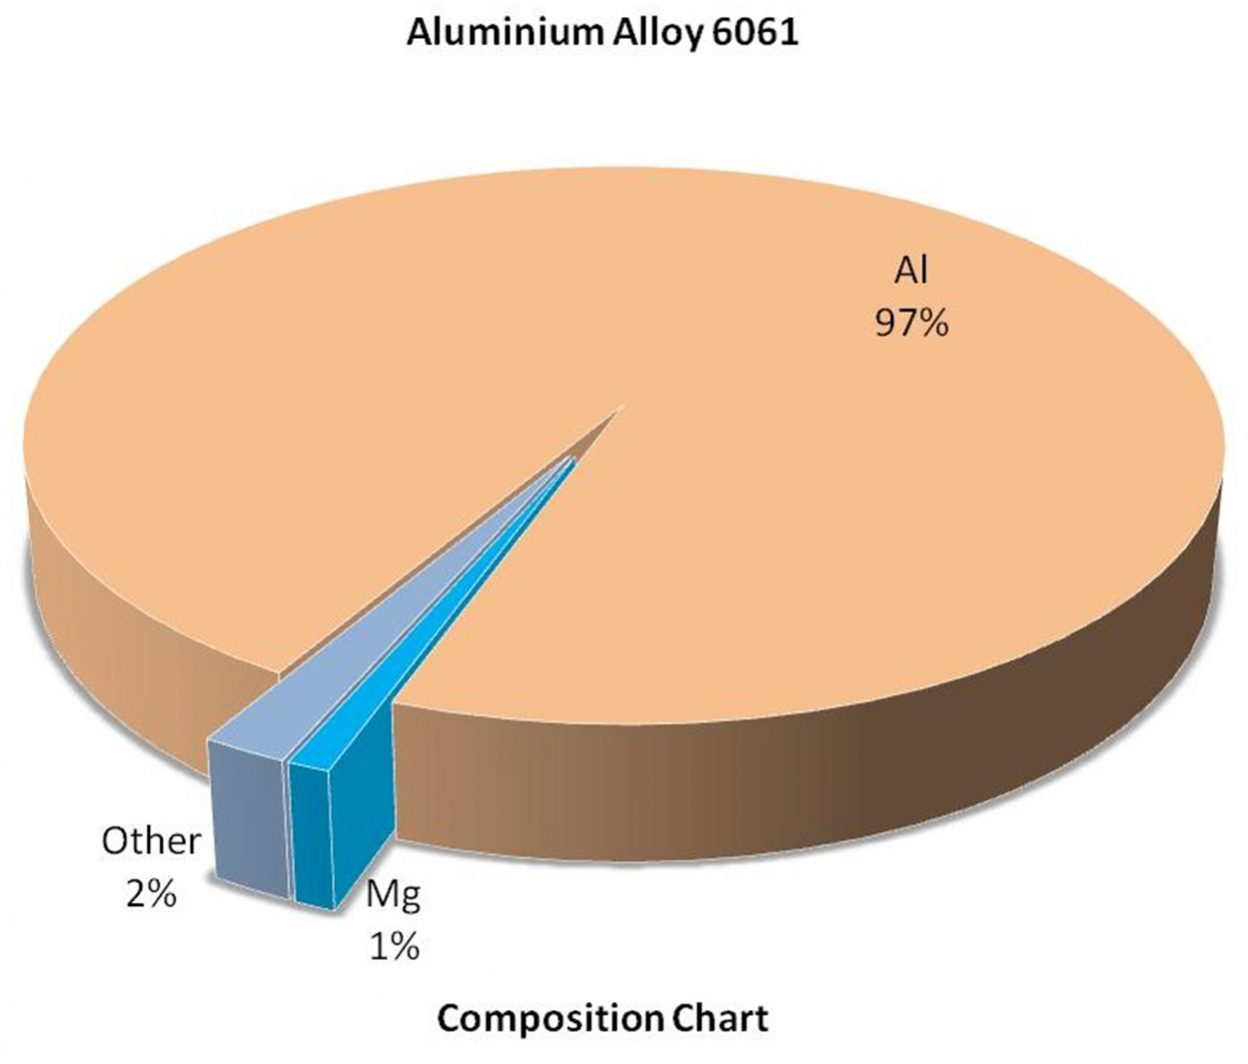 Composition Chart - Al Alloy 6061